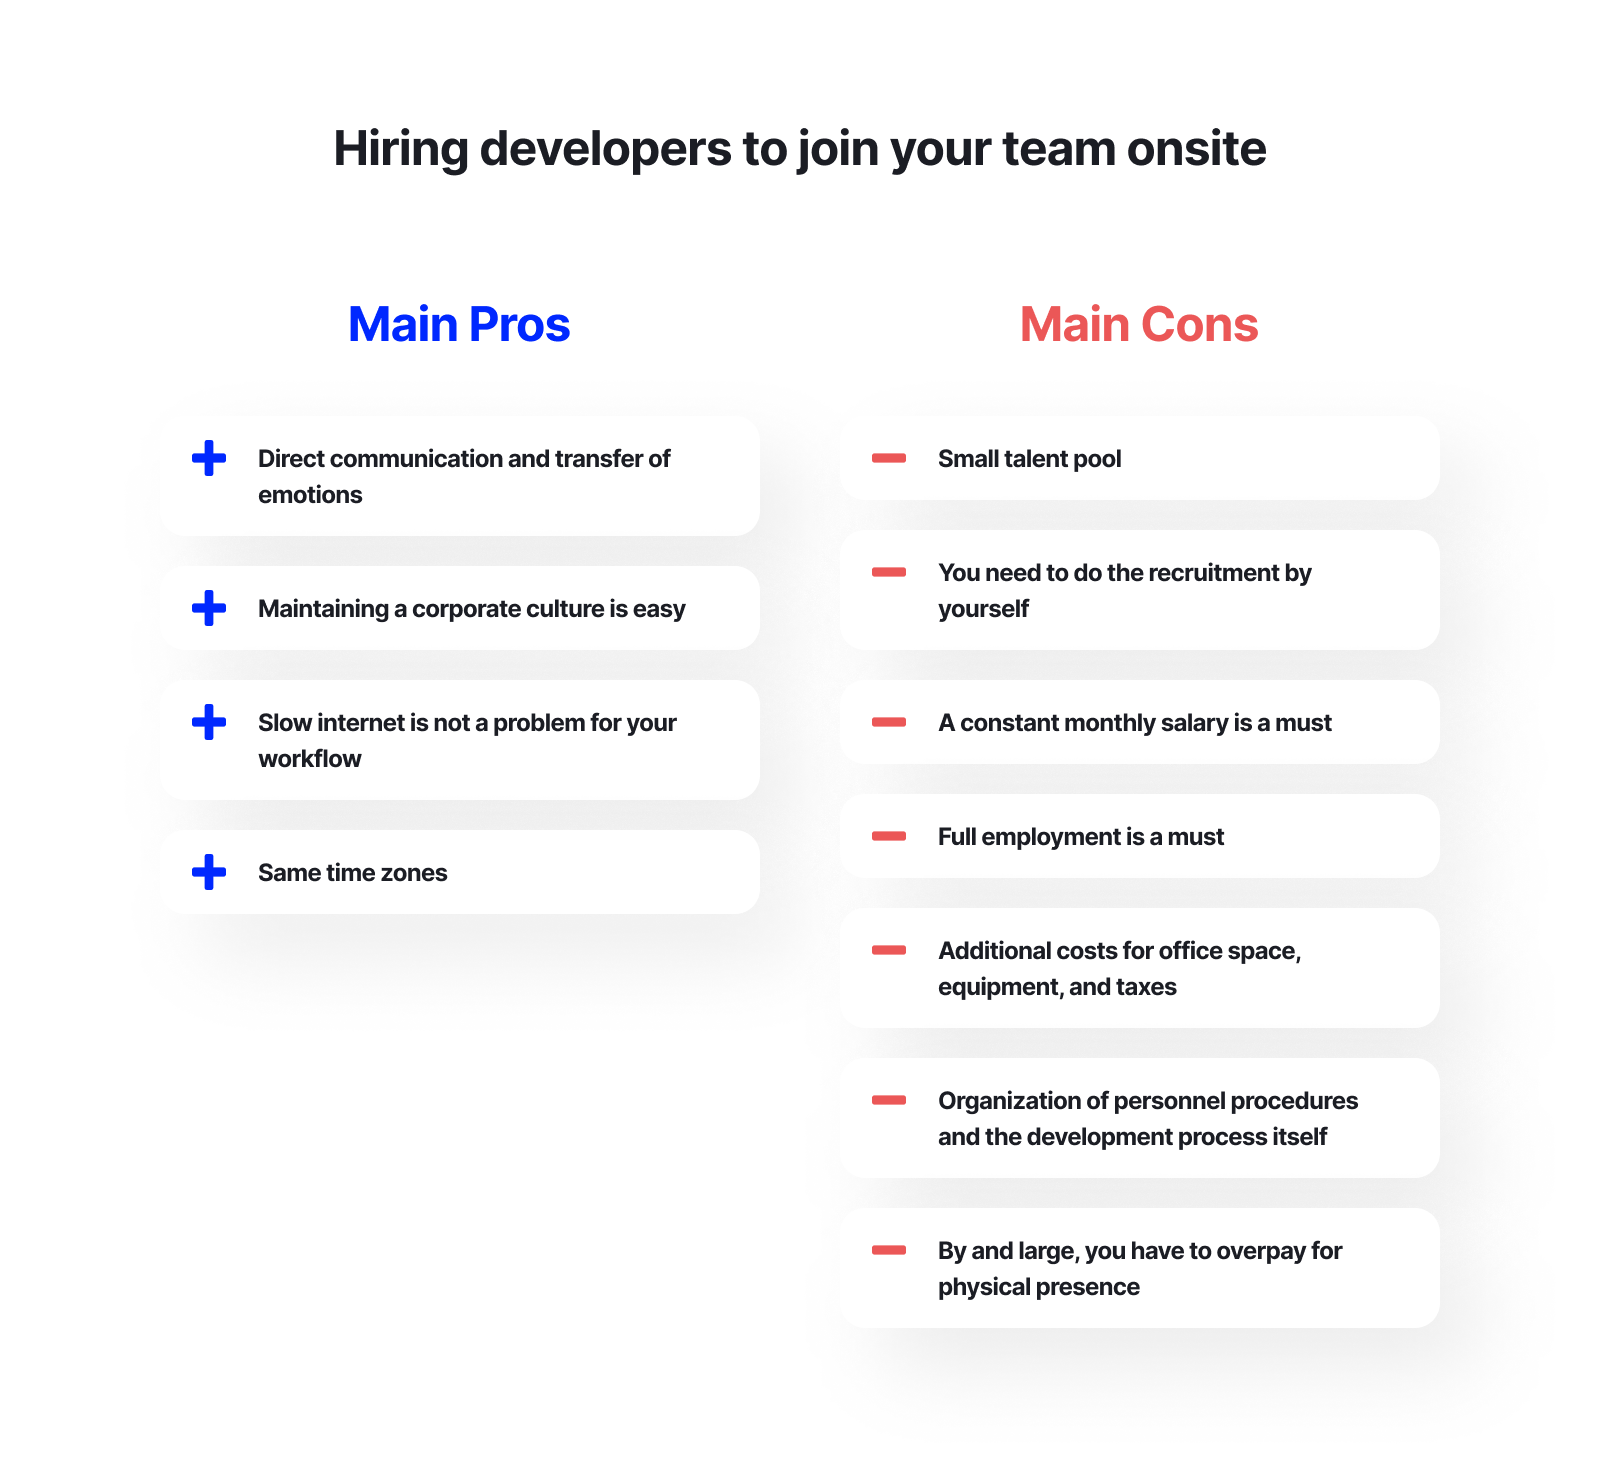 Hiring developers to join your team onsite - main pros and cons